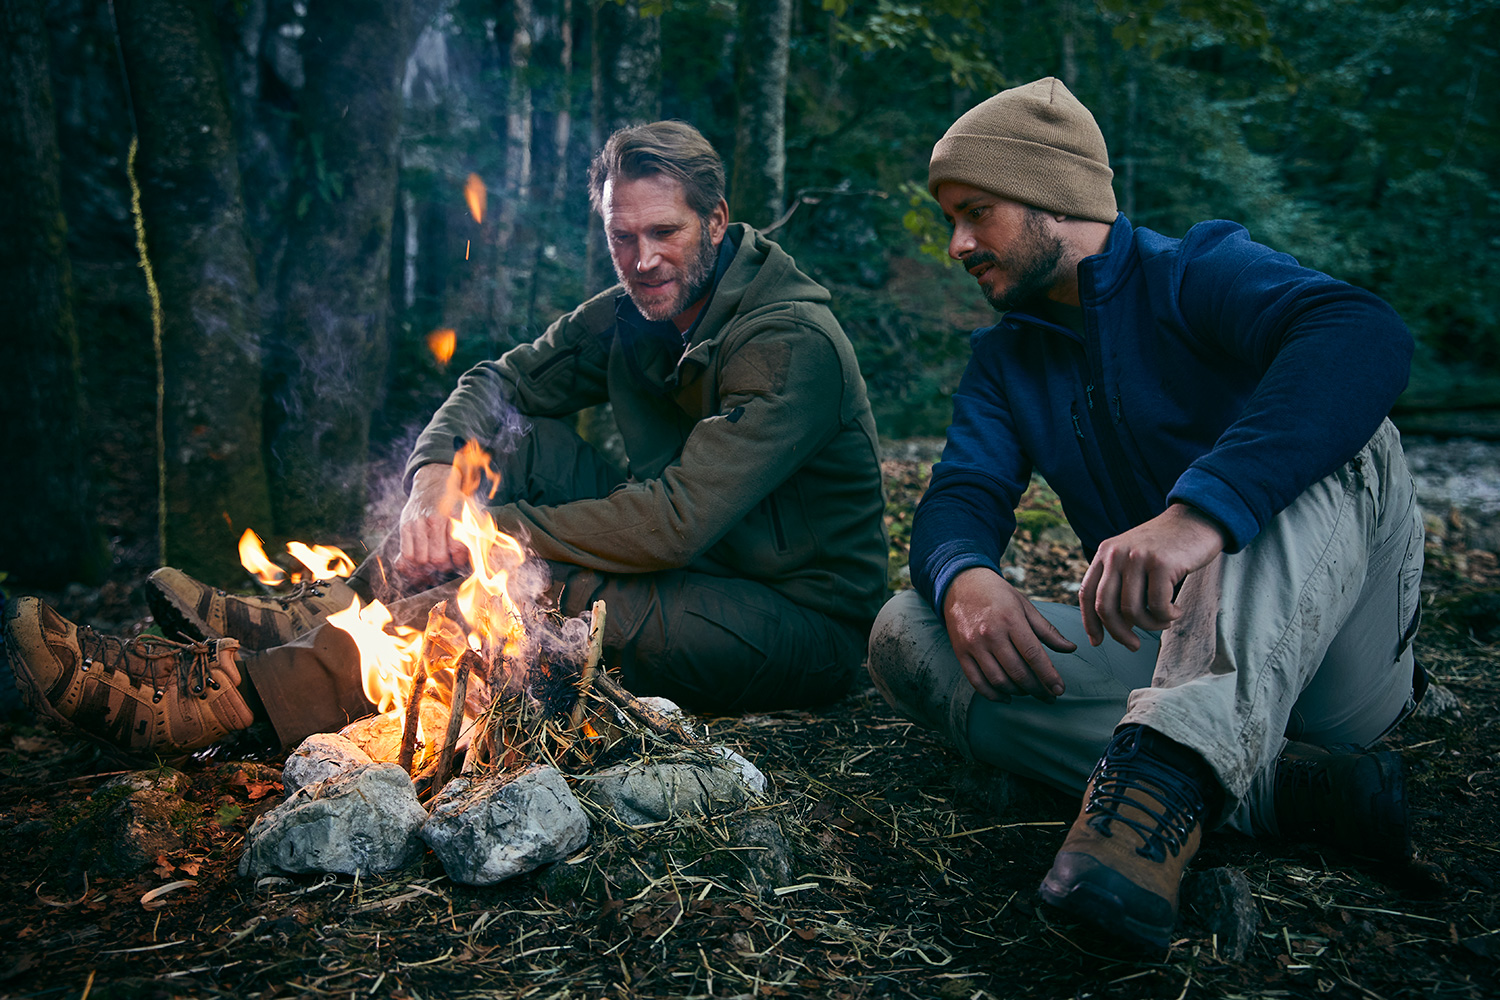 Survival trainer and his client sitting around a fire in the woods